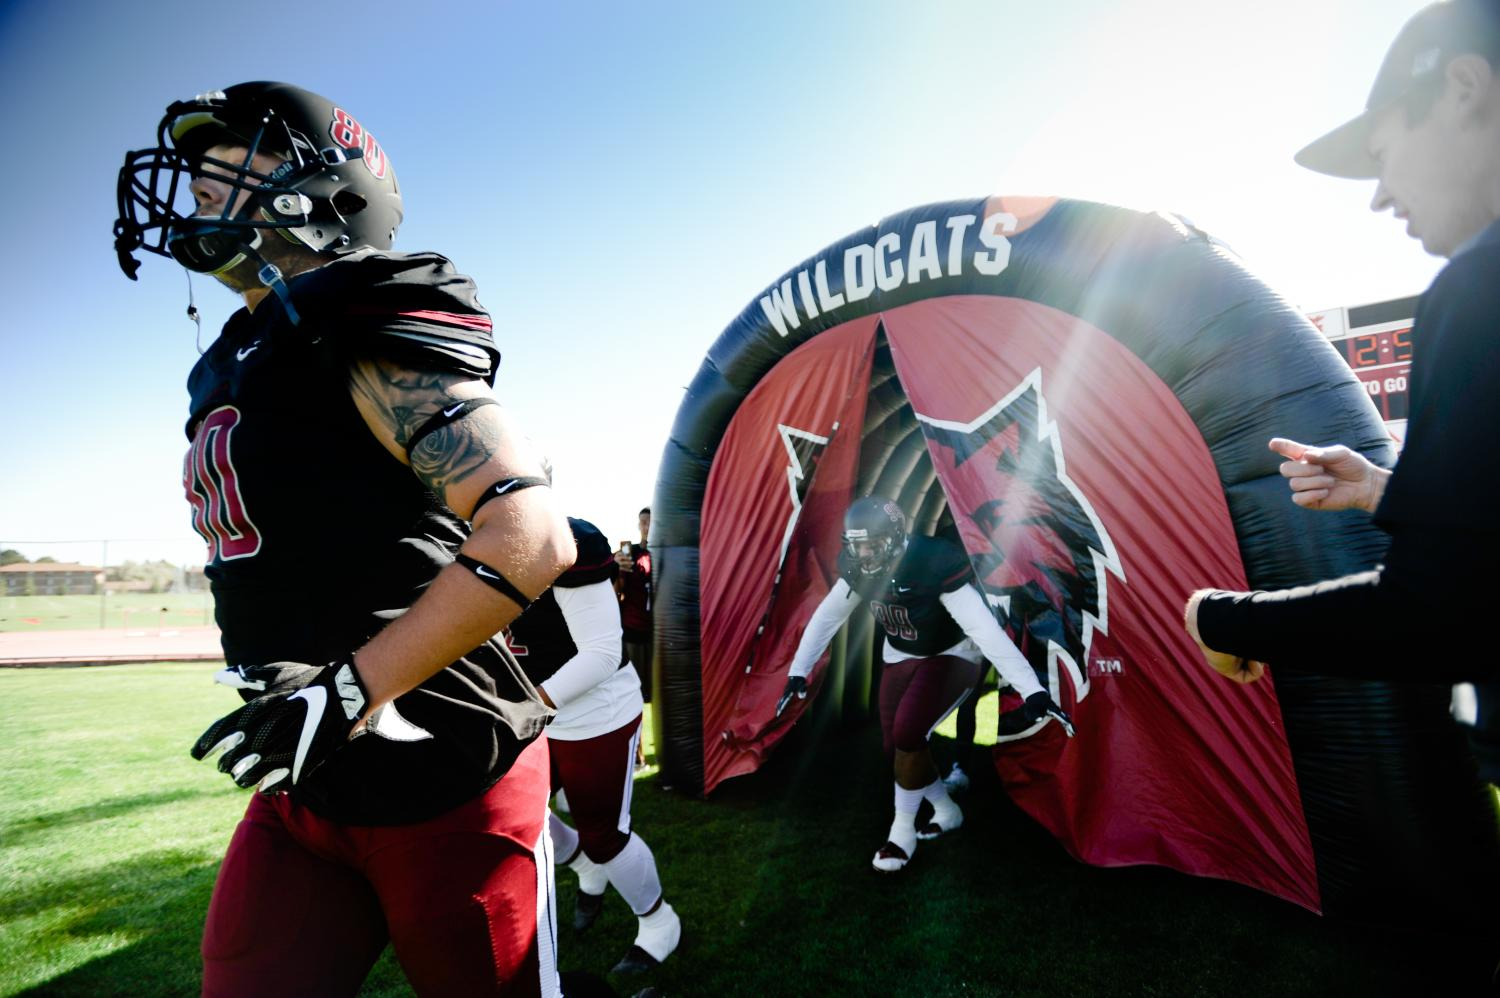 Players enter through the tunnel.